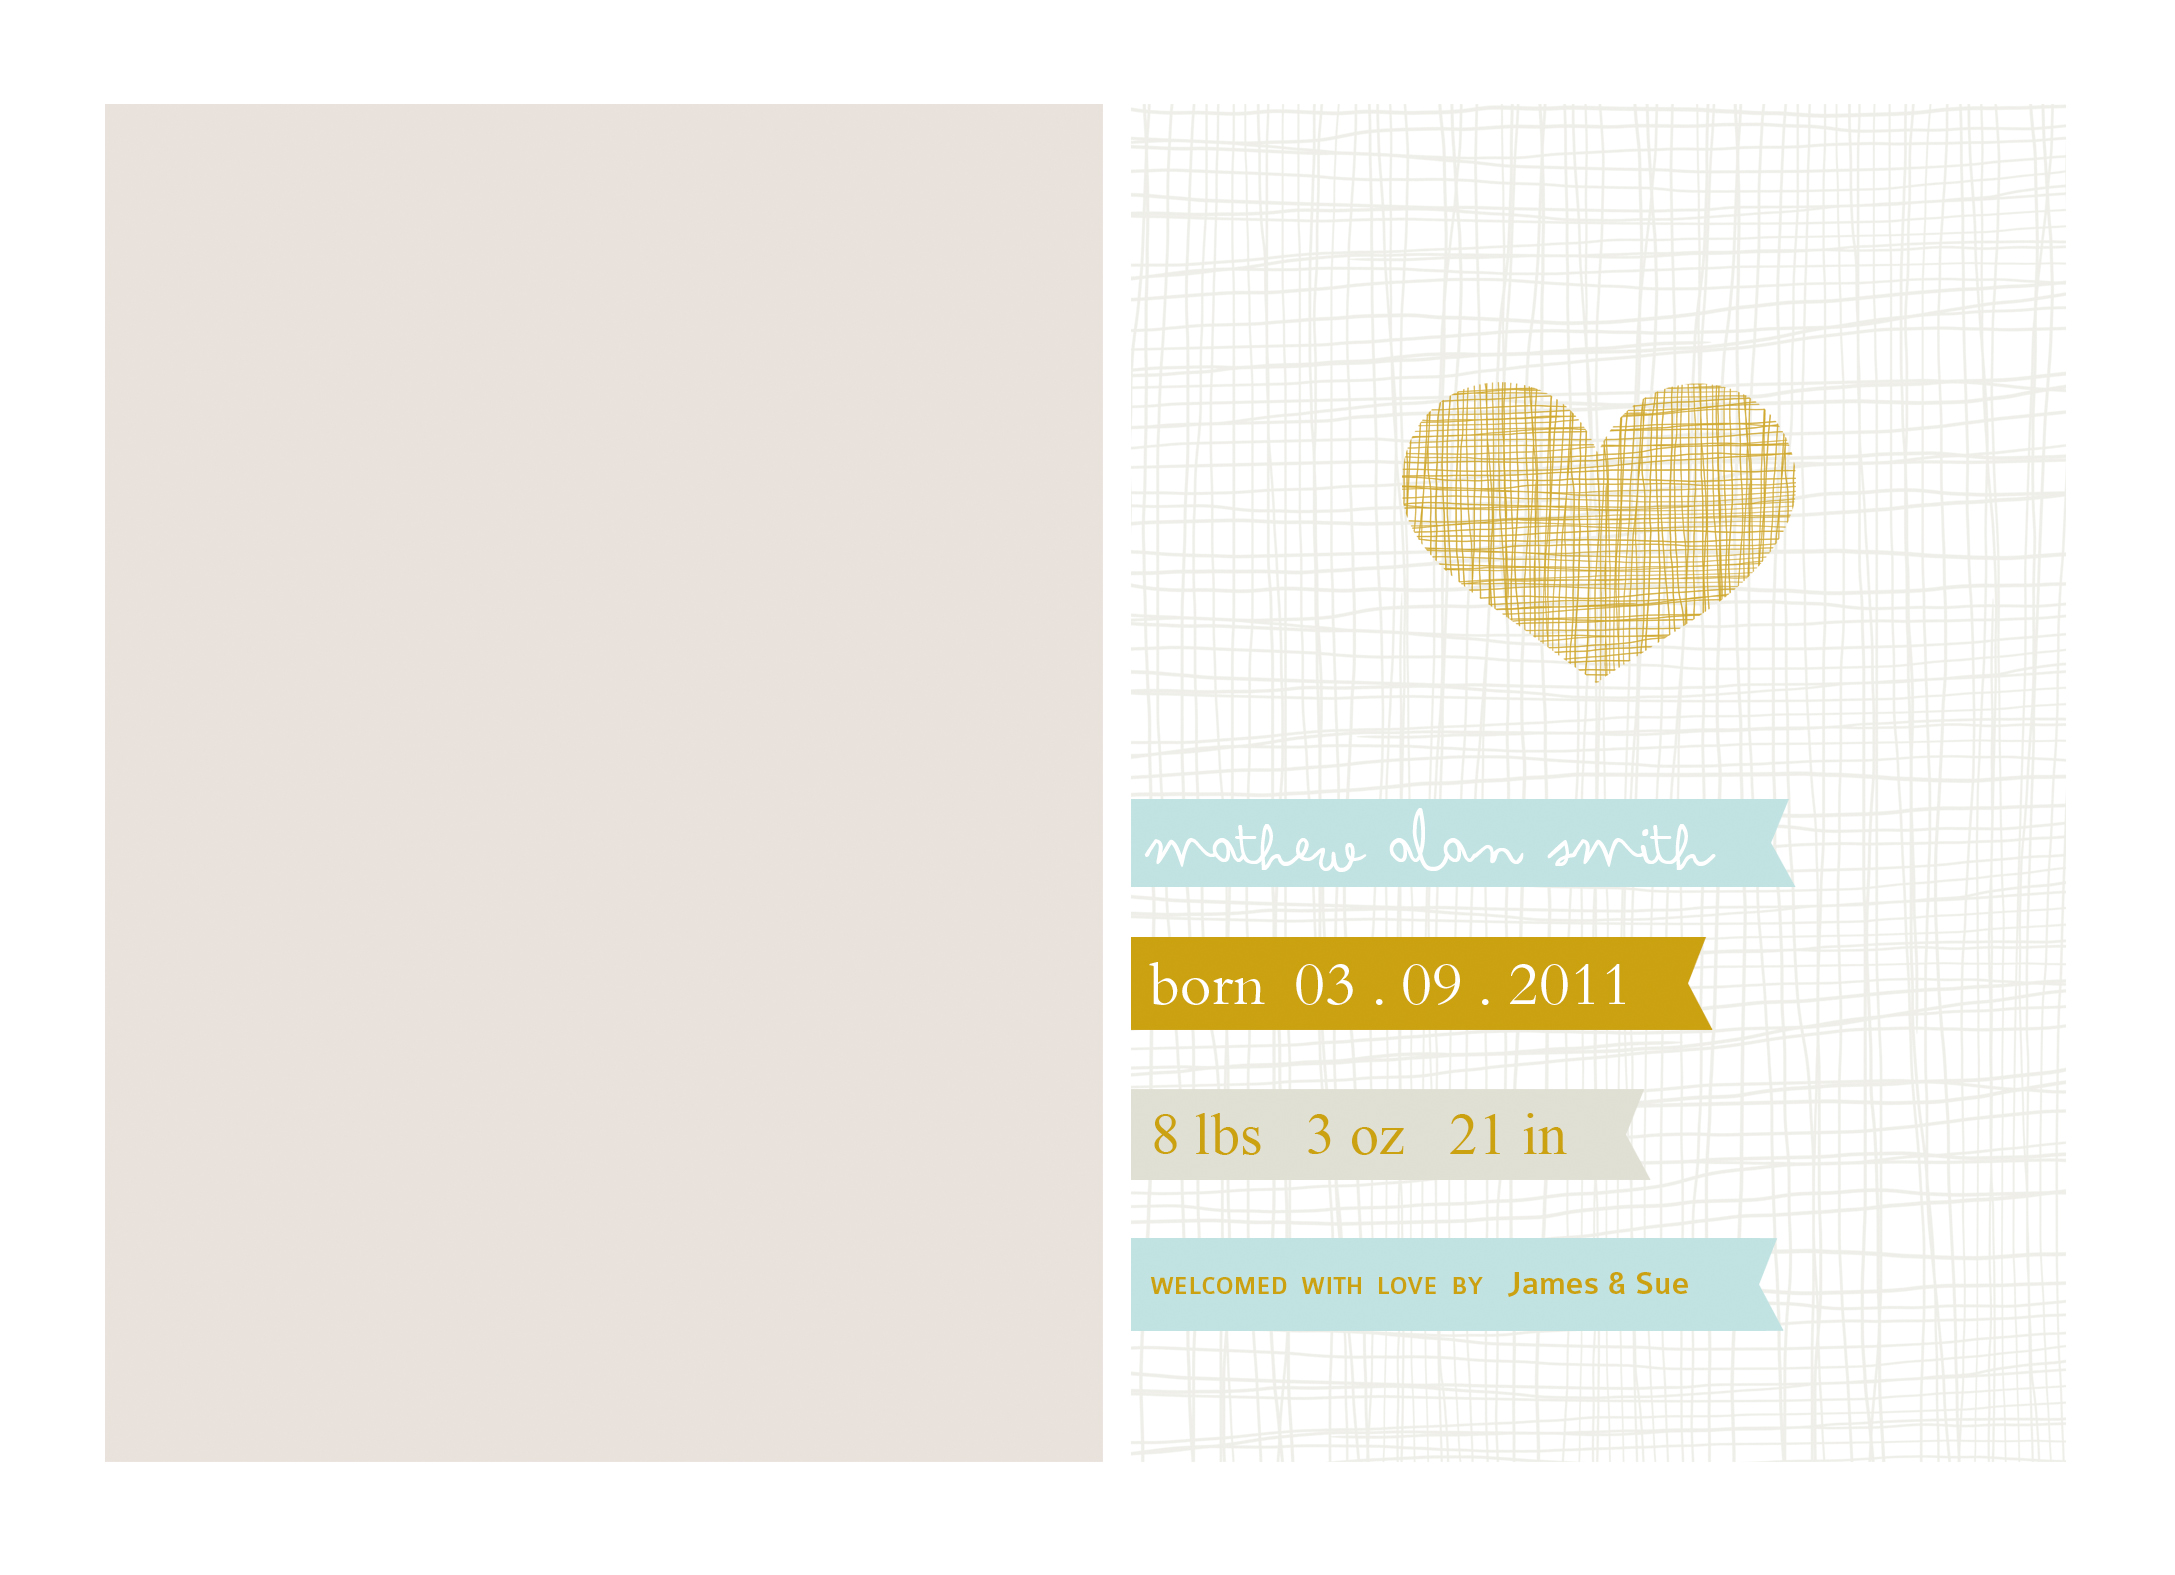 003Hello_Love Collection Front.jpg